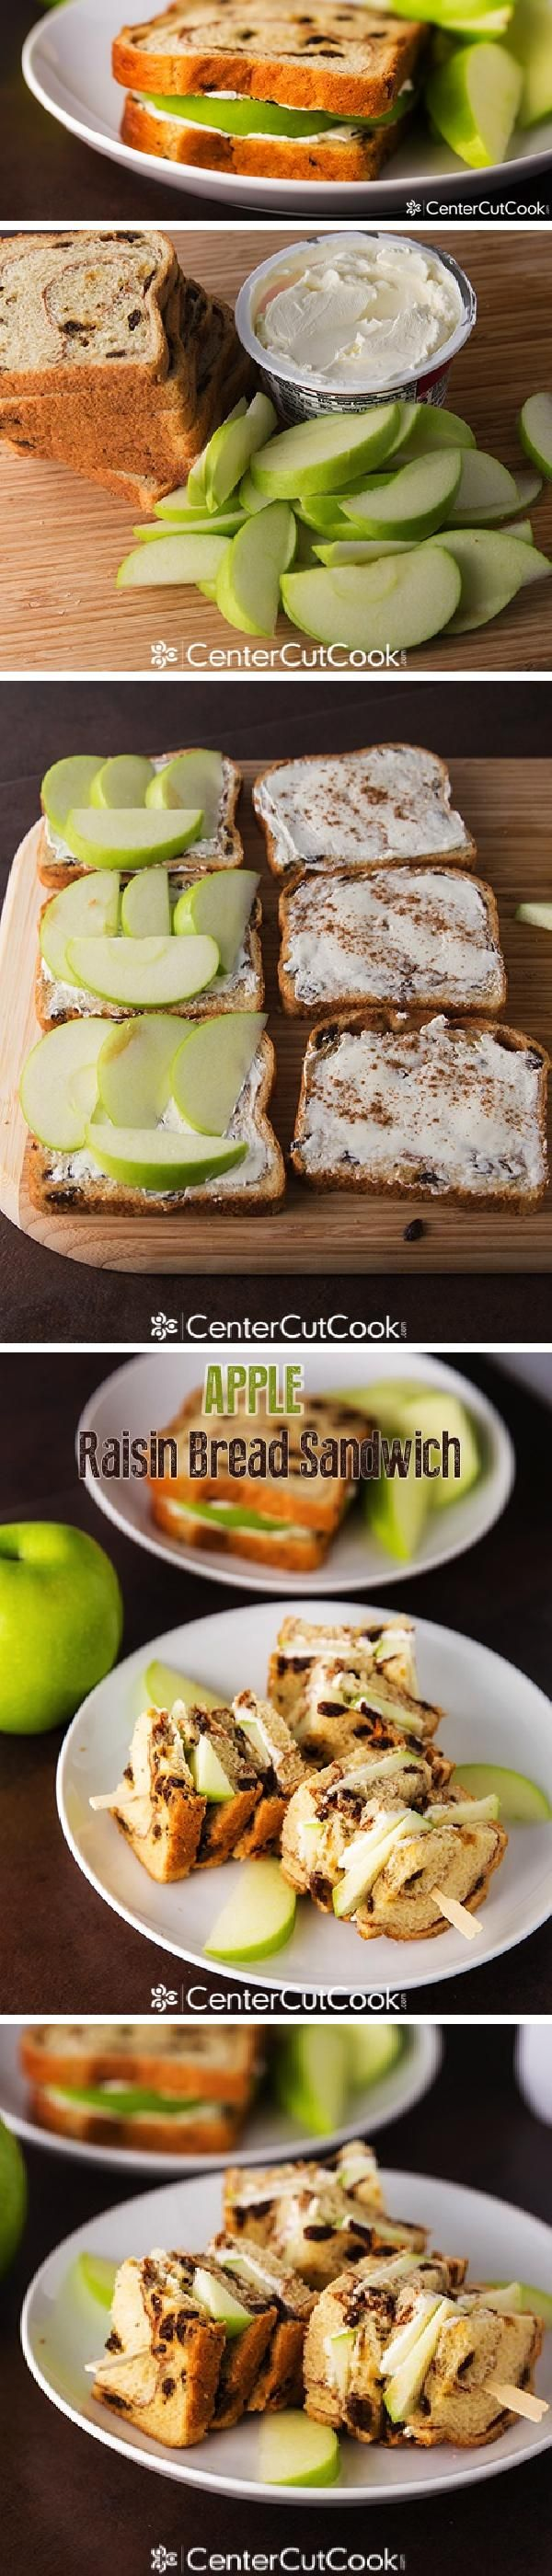 Thinly sliced APPLES get SANDWICHED between RAISIN BREAD and cream cheese to create an Apple Raisin Bread Sandwich that everyone will love!